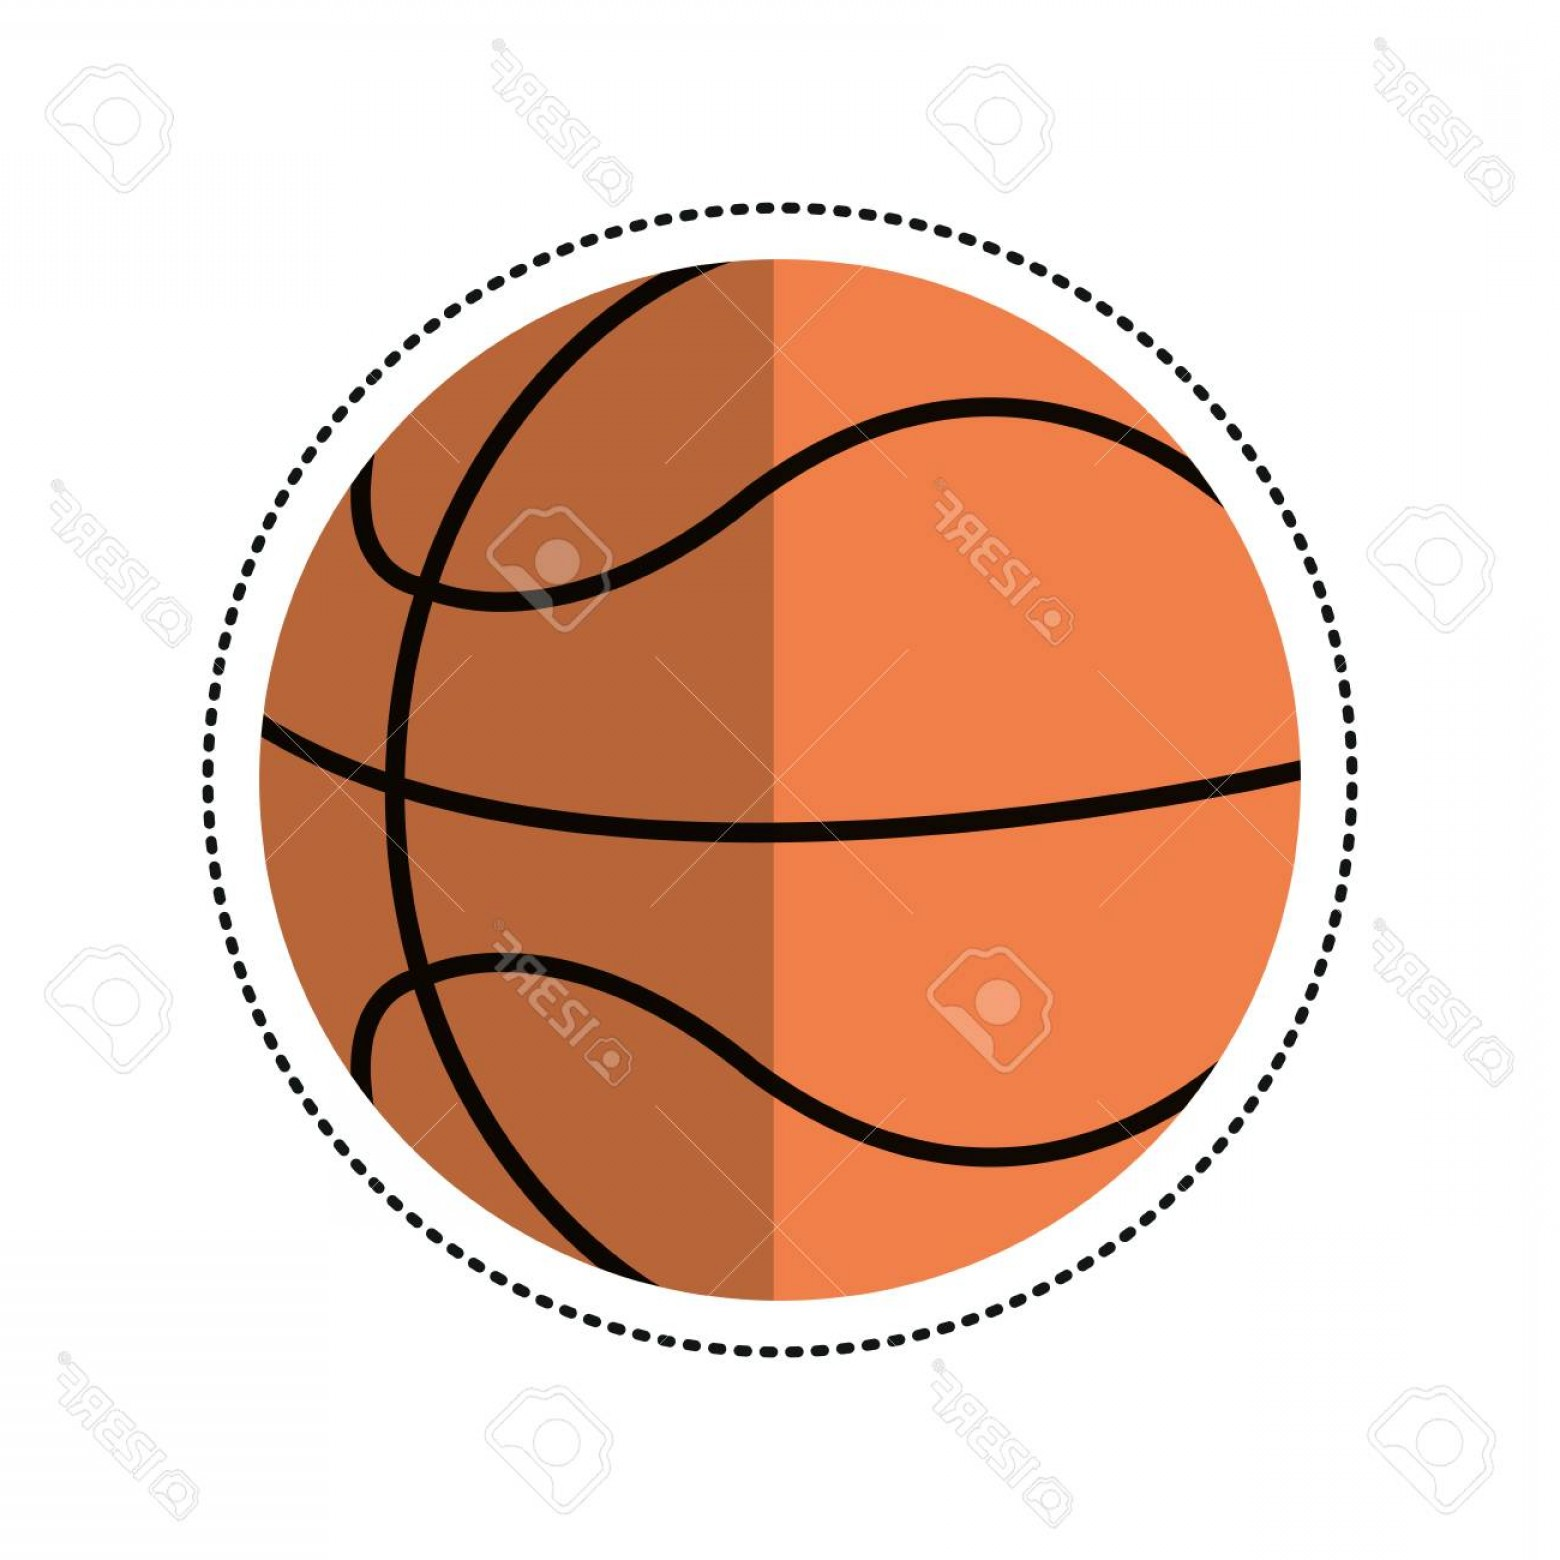 Cartoon Basketball Vector: Photocartoon Basketball Ball Play Vector Illustration Eps